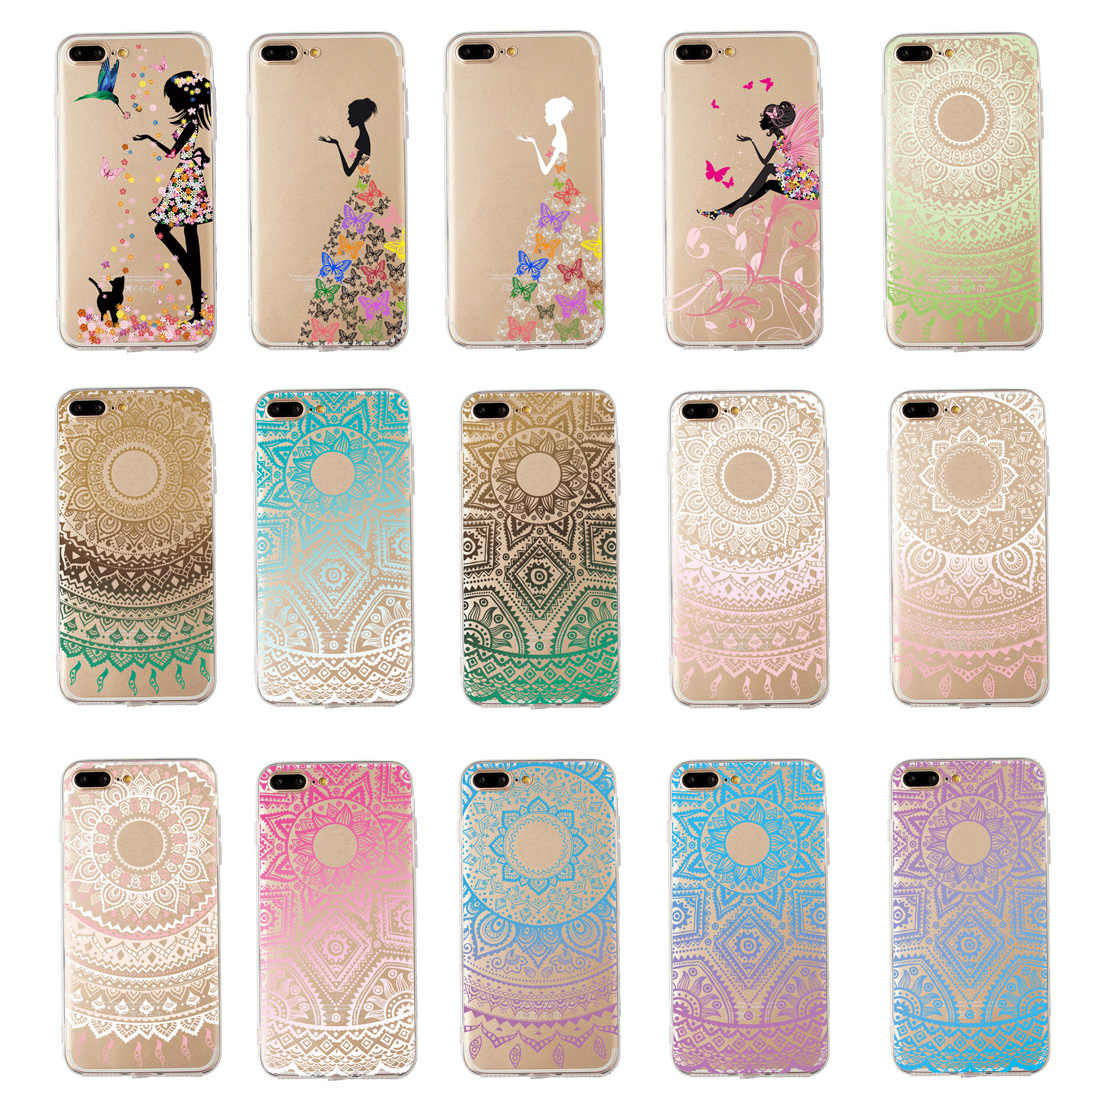 New Fashion Painted Embossed Phone Case For iphone6/6s iphone6plus/6splus iphone7 iphone7plus iphoneX iphone8 iphone8plus